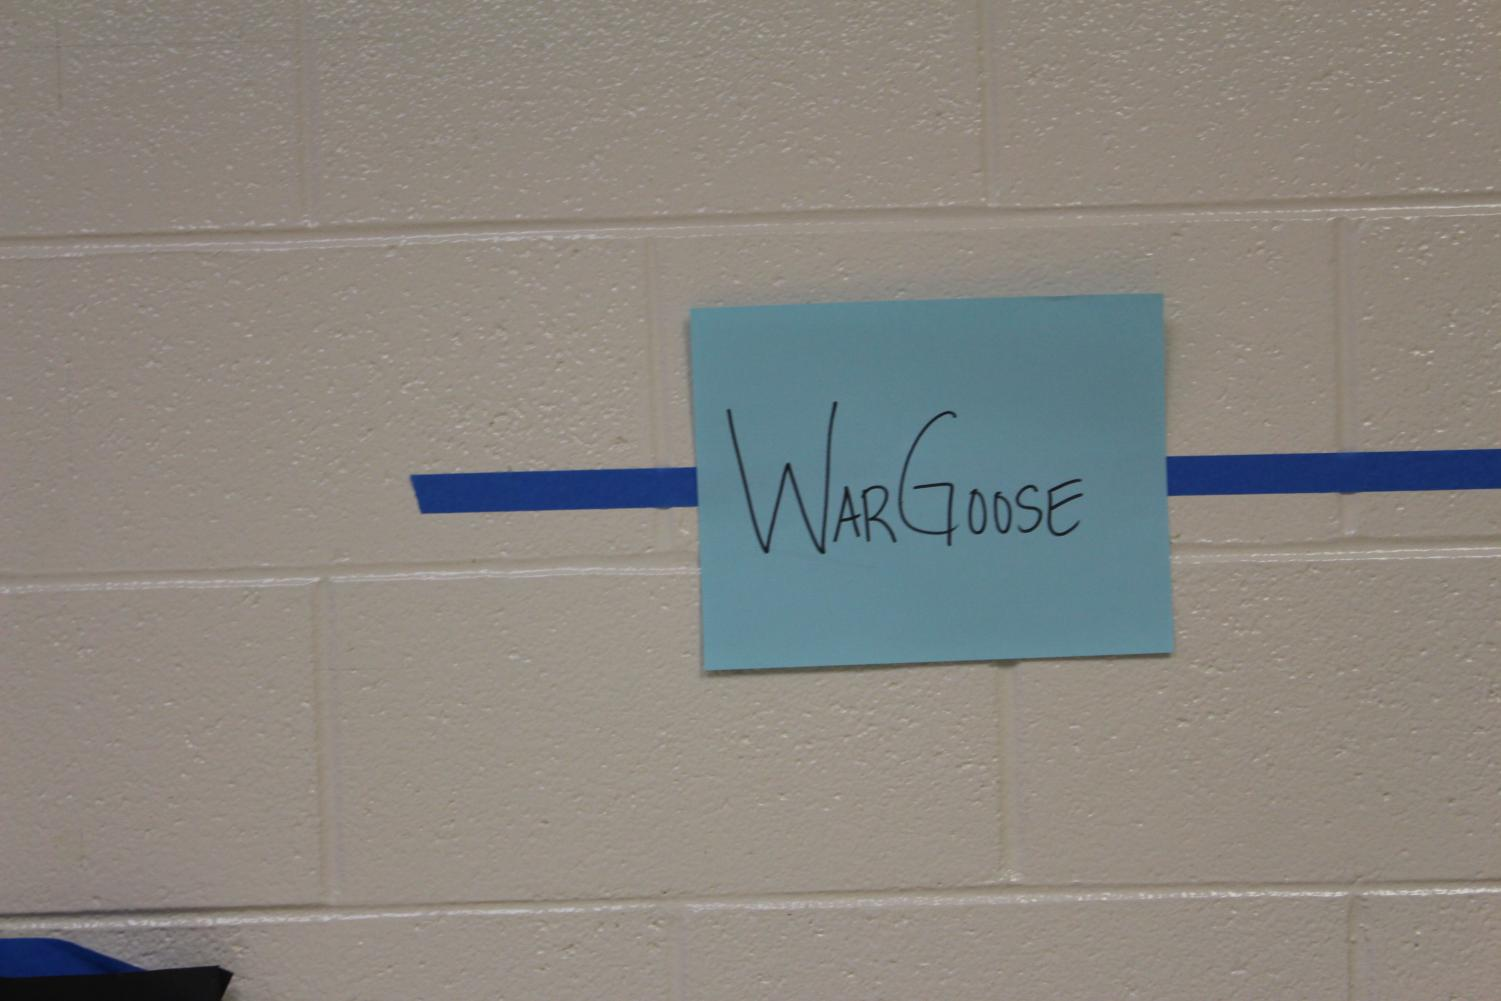 The+winner+between+the+Tag+Team+and+Cat-e-Gory+with+Wargoose++from+the+Tag+Team.